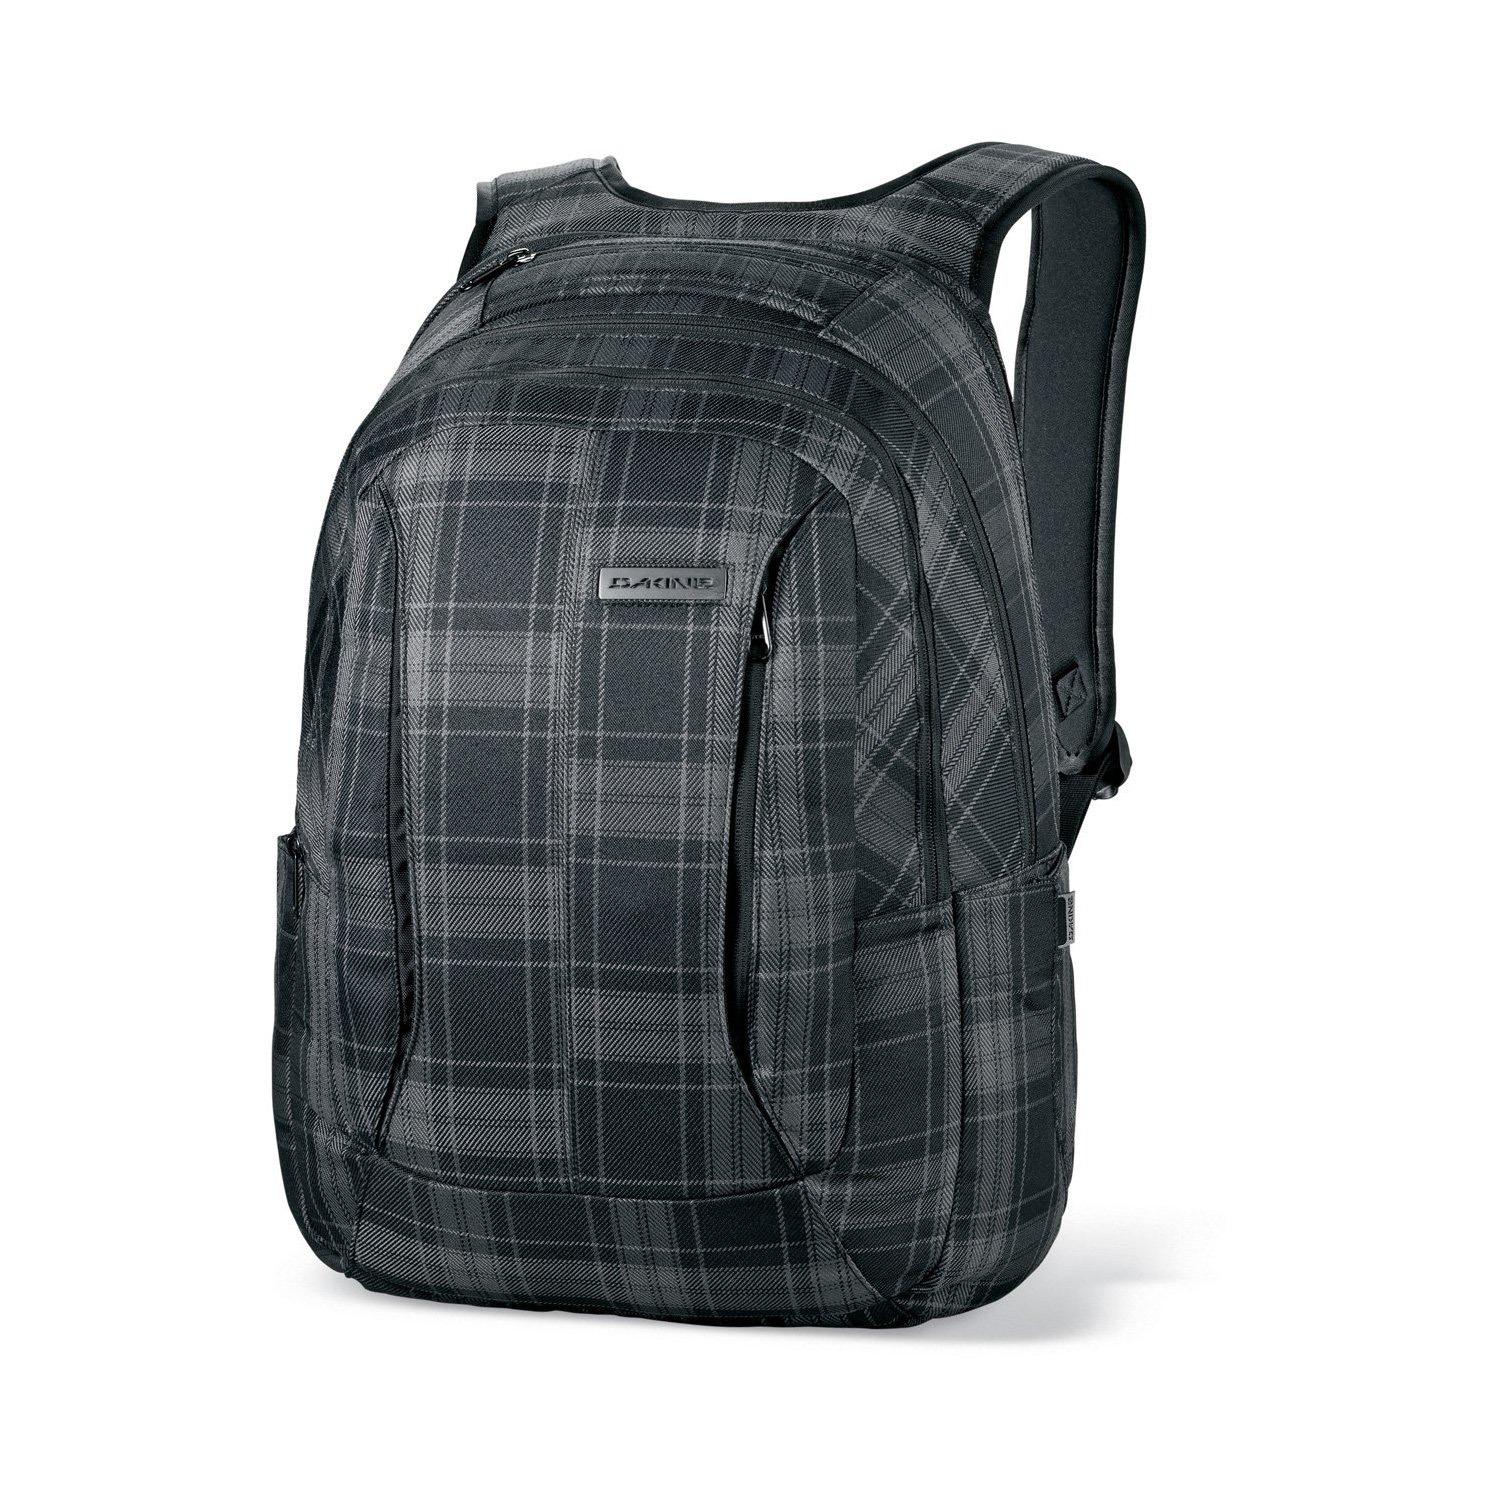 DAKINE NETWORK 31L BACKPACK (8130005)